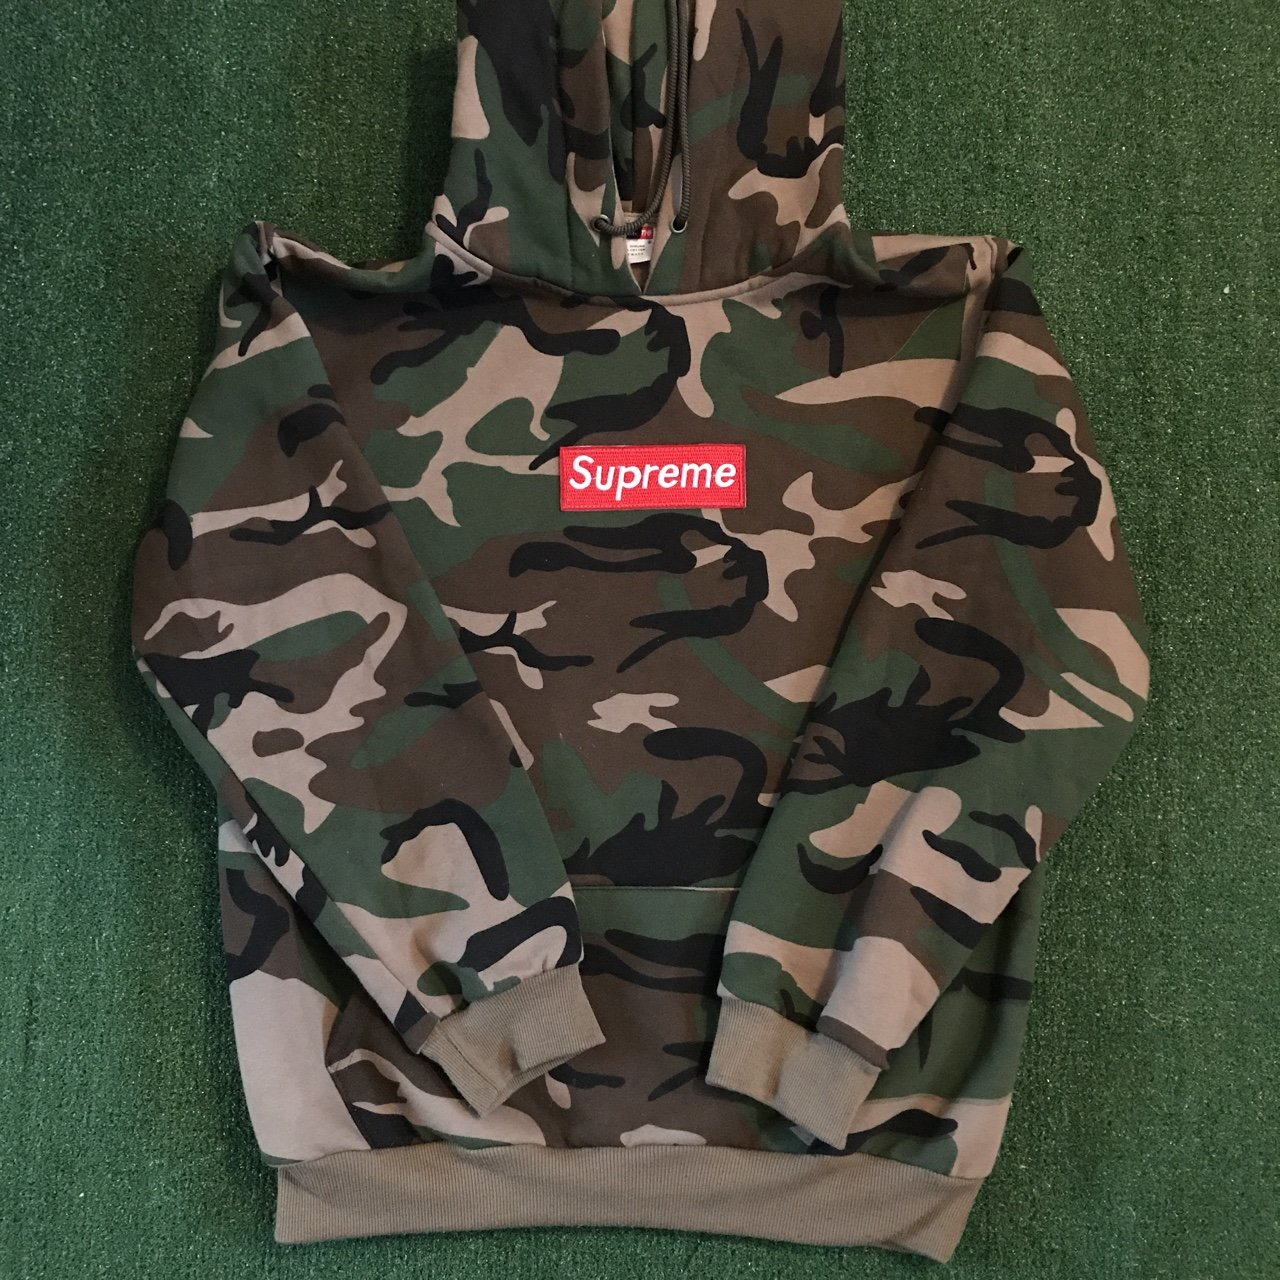 8e54519332c3 Bootleg camo supreme box logo hoodie in good used condition depop jpg  1280x1280 Hoodie box hood